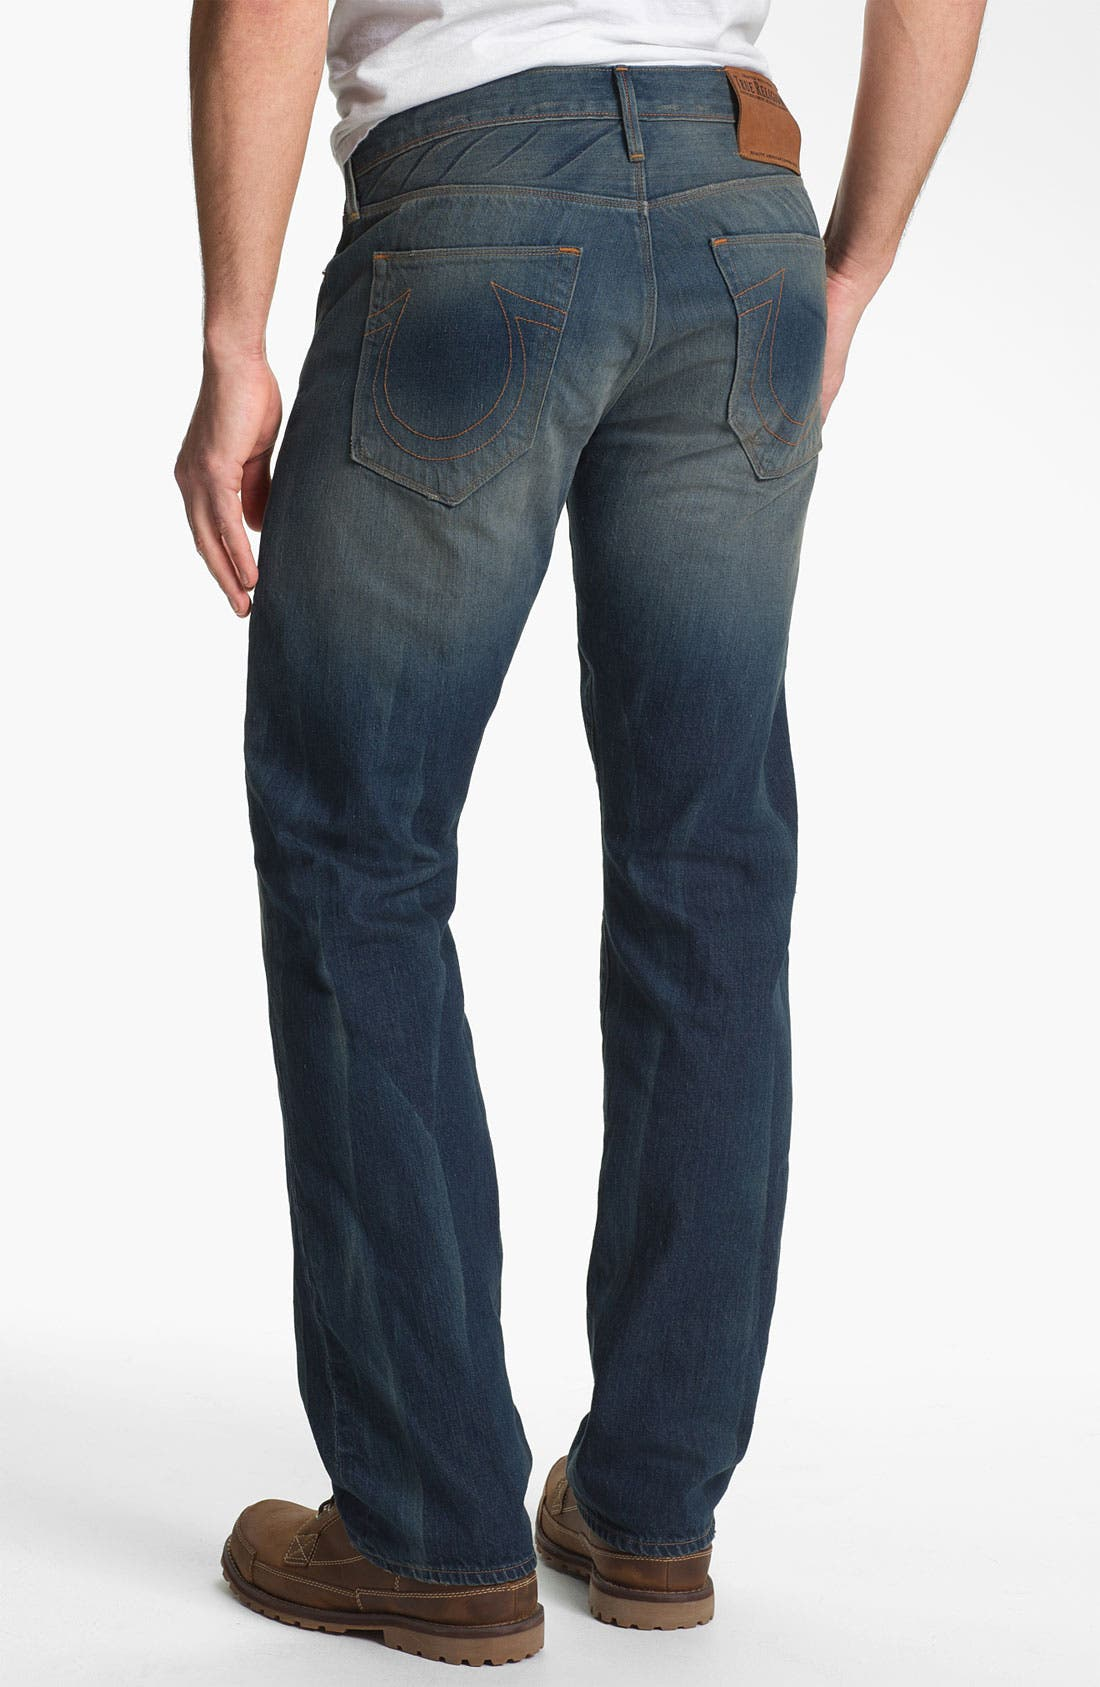 Alternate Image 1 Selected - True Religion Brand Jeans 'Bobby 50s' Straight Leg Jeans (Deadwood)